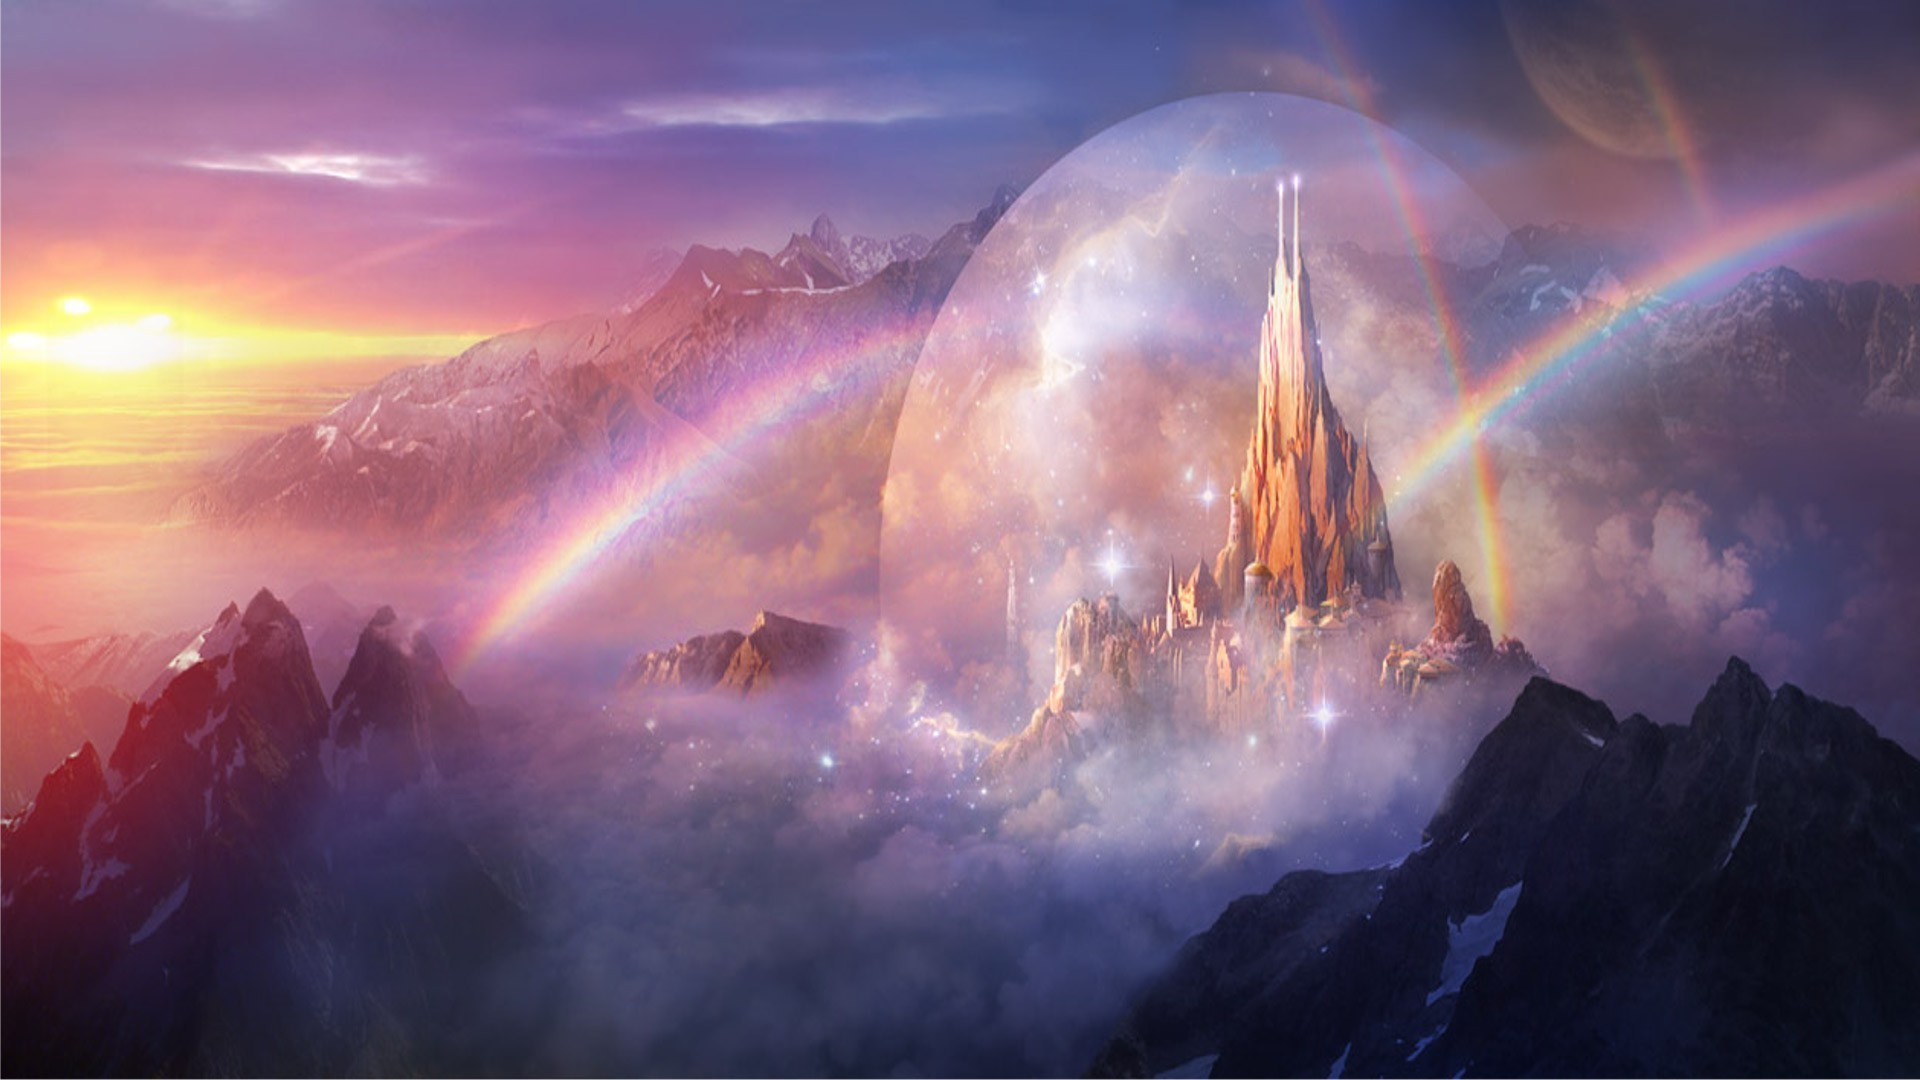 Castle in the rainbows